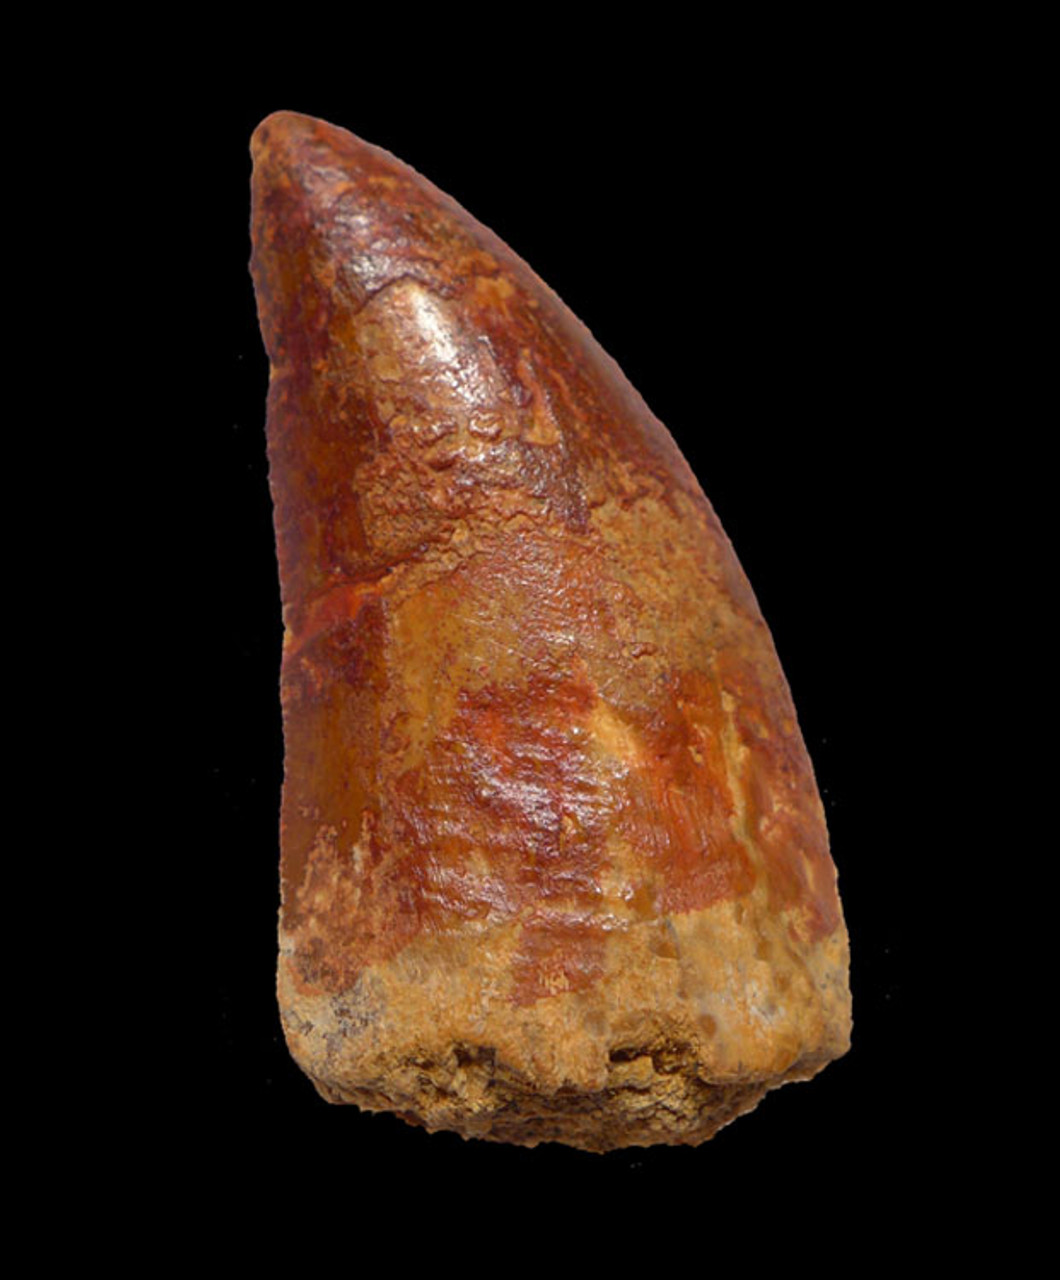 DT2-076 - 2 INCH UNBROKEN CARCHARODONTOSAURUS FOSSIL TOOTH FROM THE LARGEST MEAT-EATING DINOSAUR